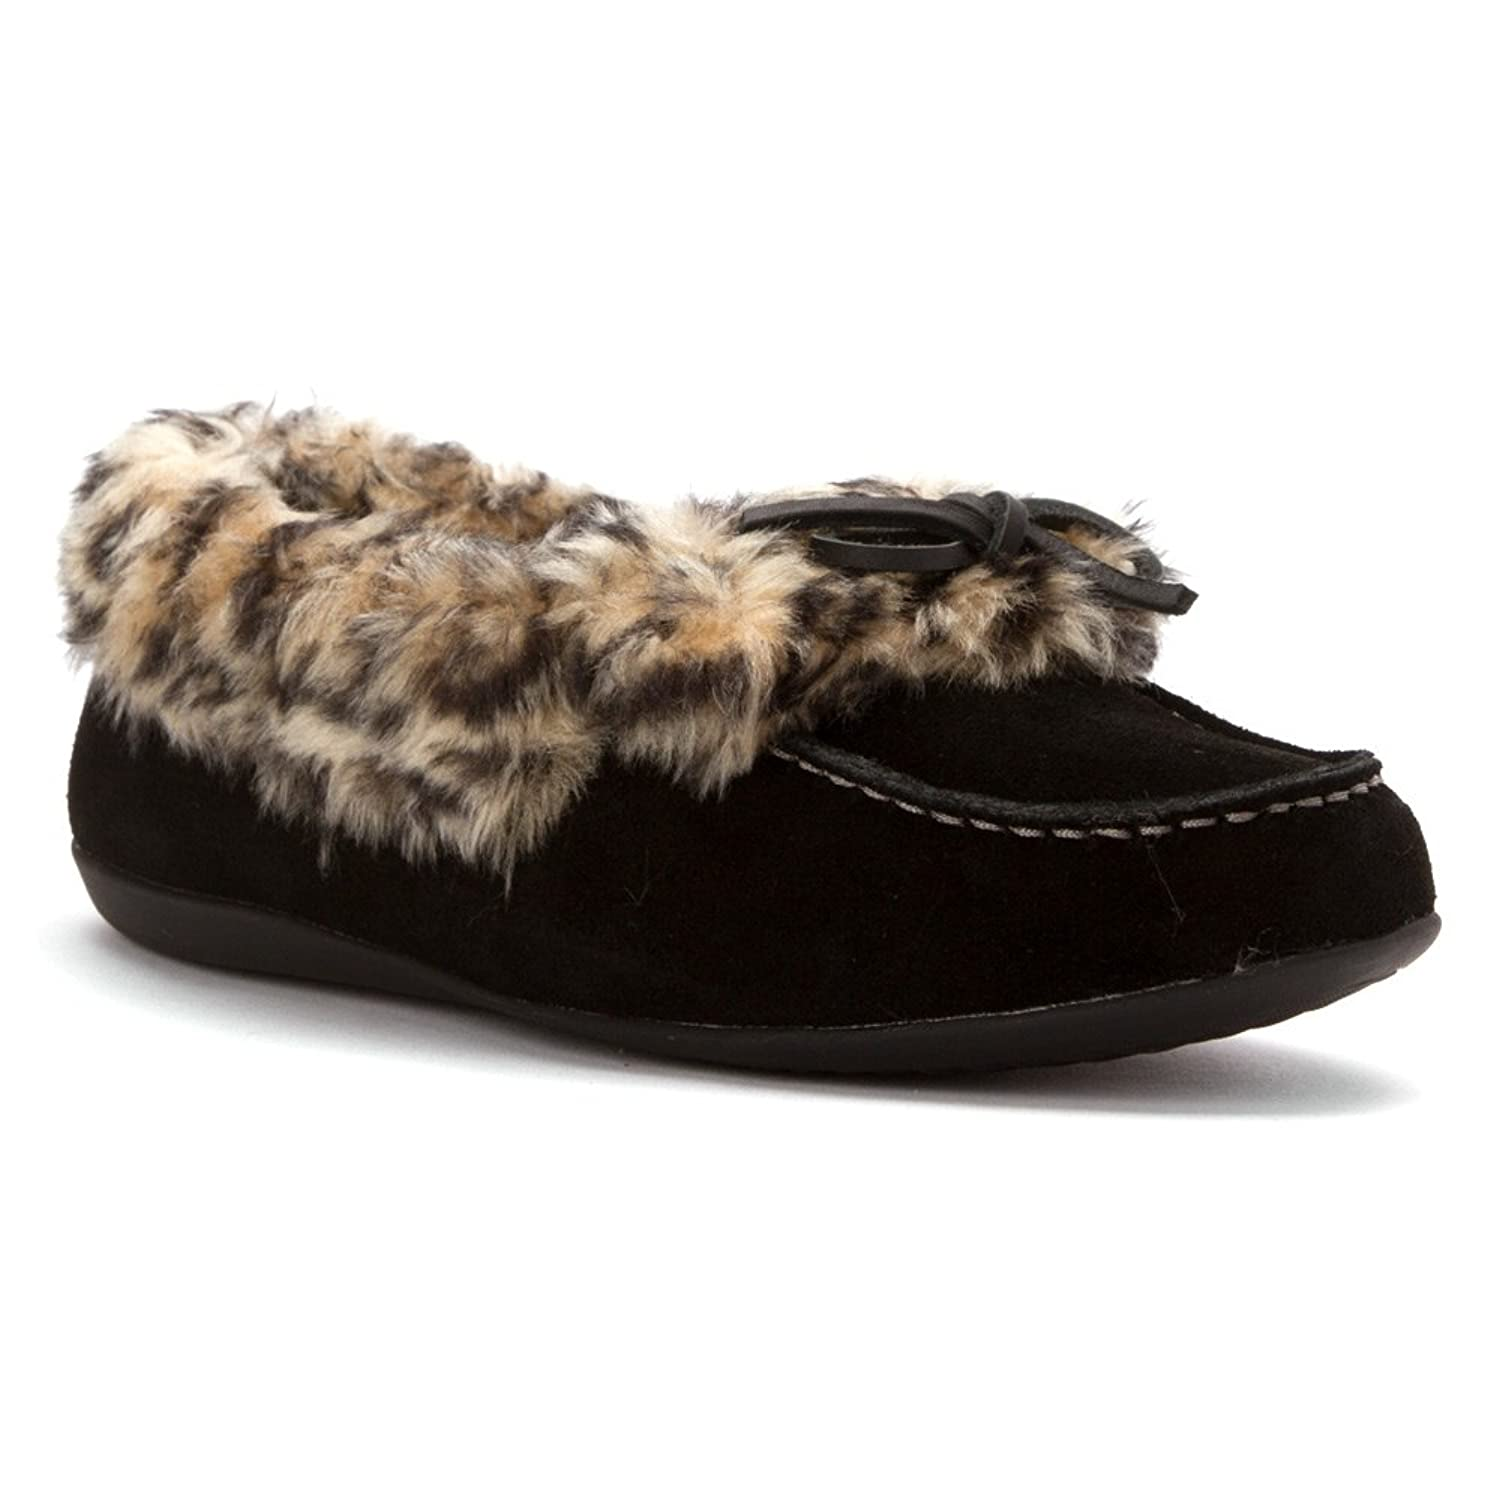 VIONIC Womens Cozy Juniper Moccasin